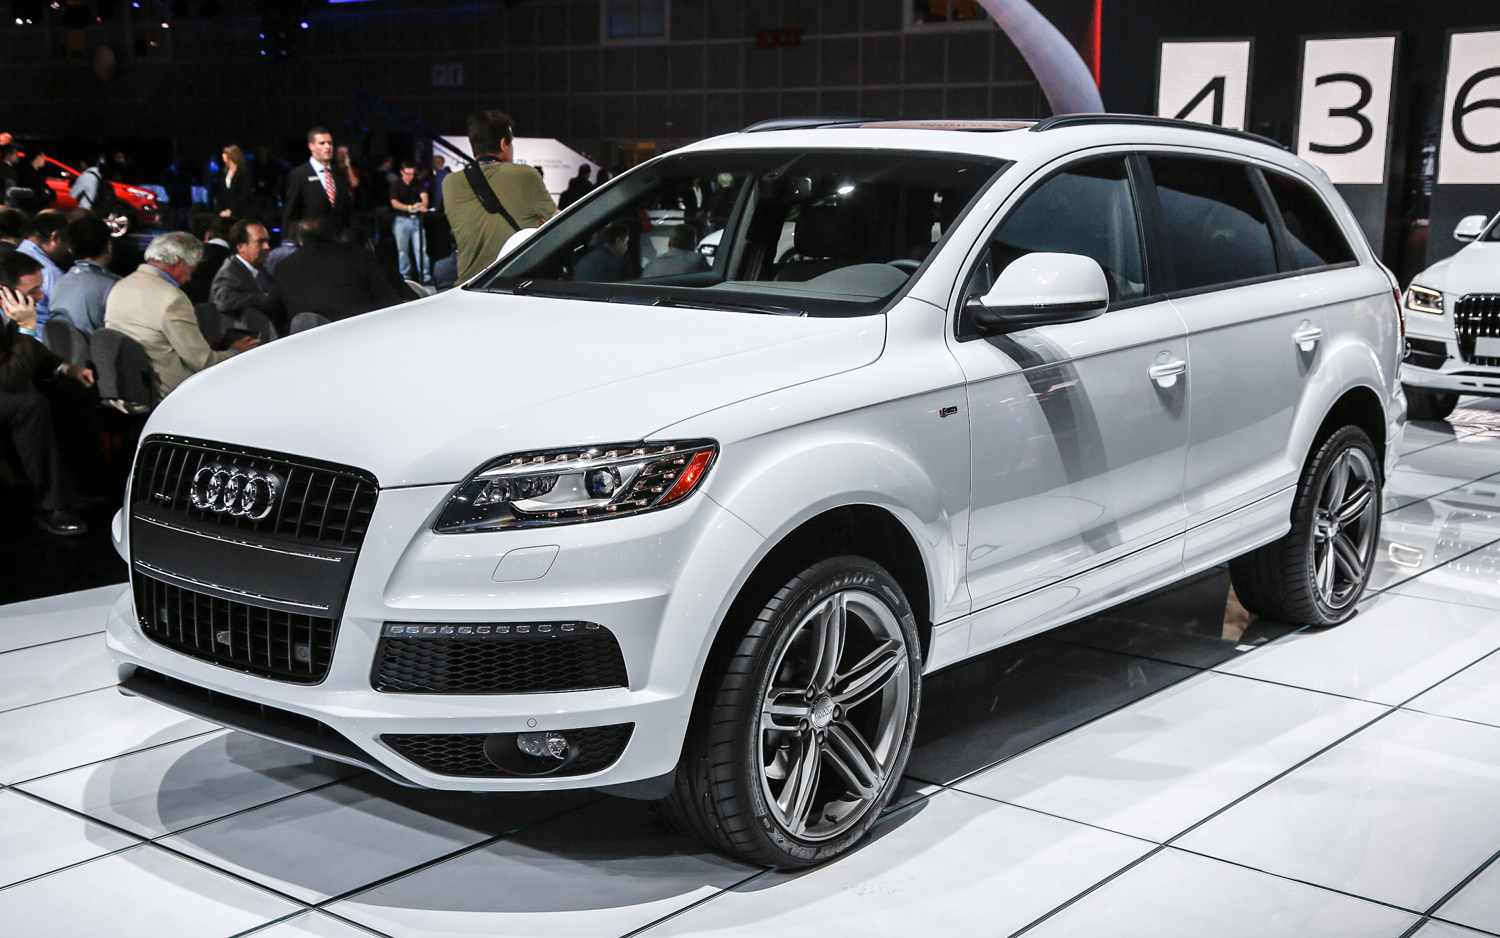 2014 Audi Q7 Review for the Family car market